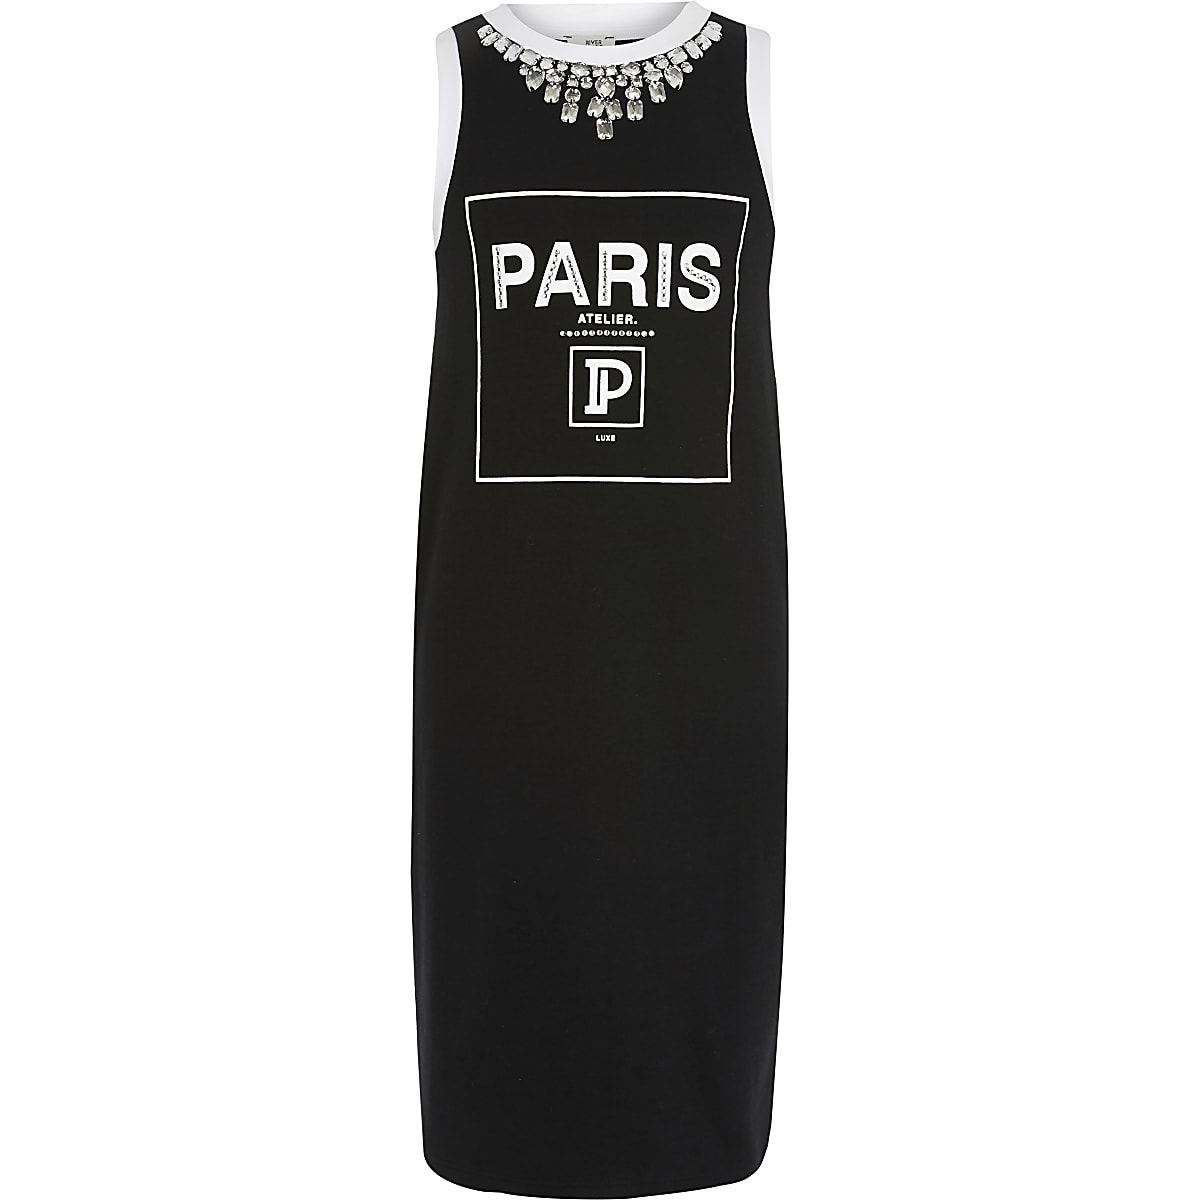 Girls black 'Paris' jersey dress